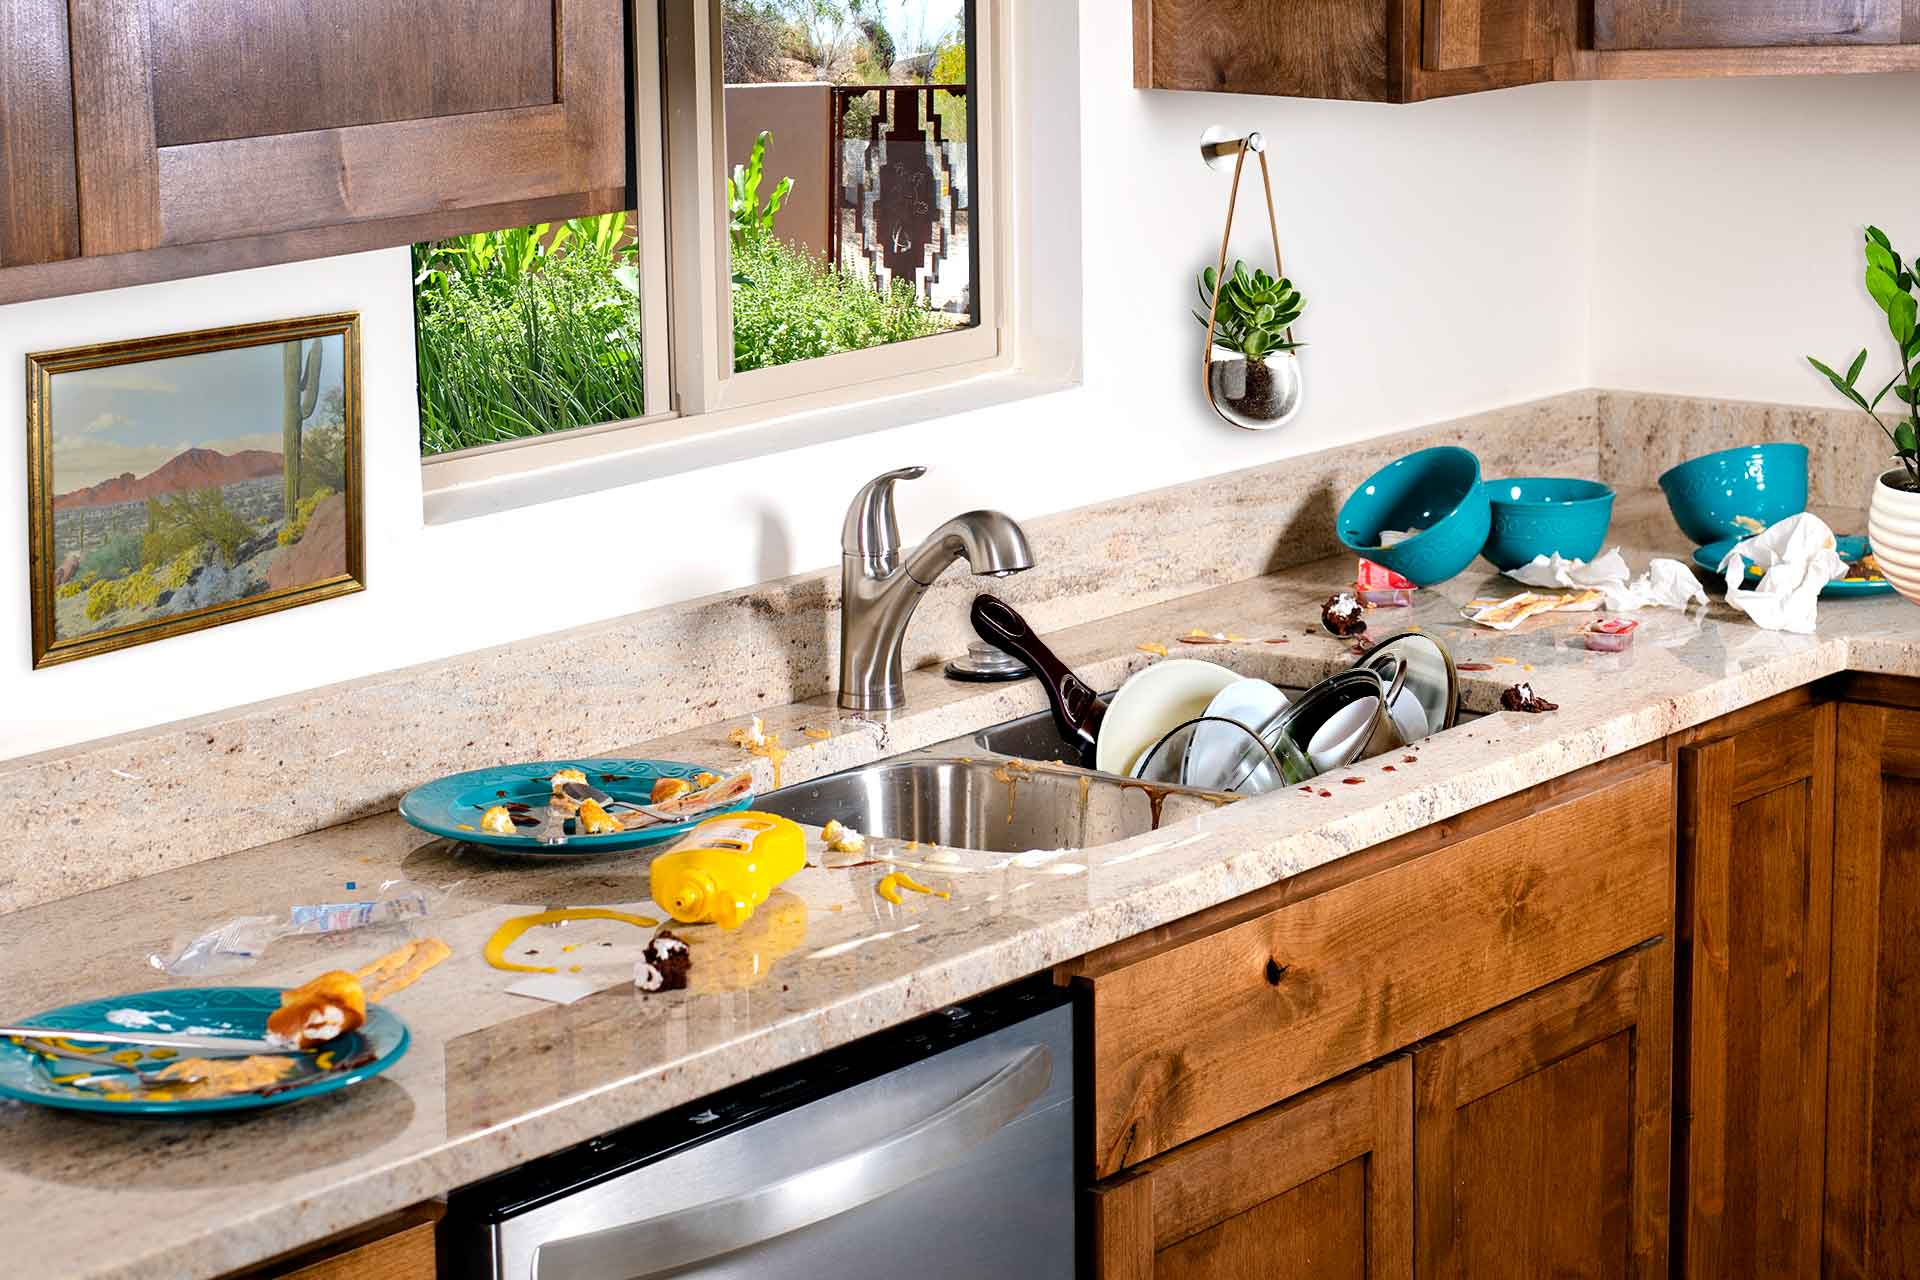 A sink filled with dishes and a counter covered with food in a house that needs housekeeping